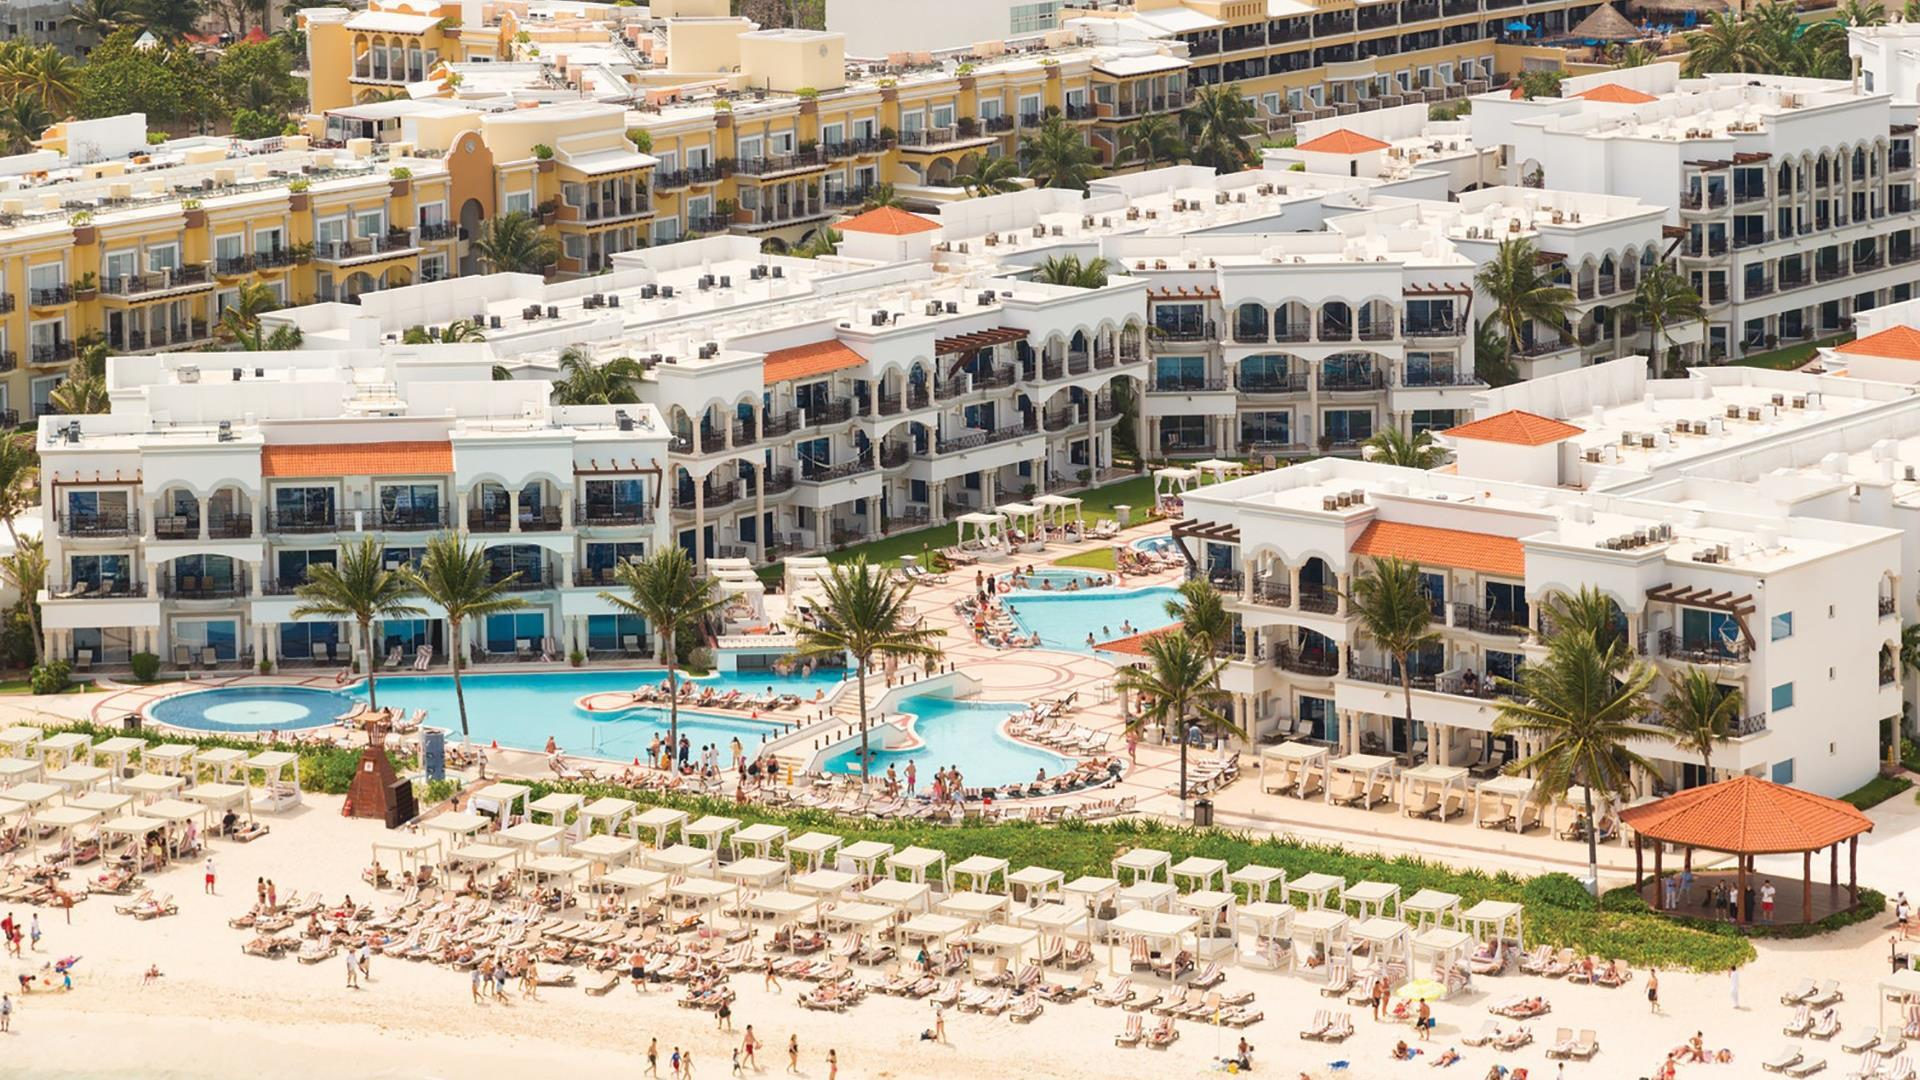 Meetings and events at Hilton Playa del Carmen, an All